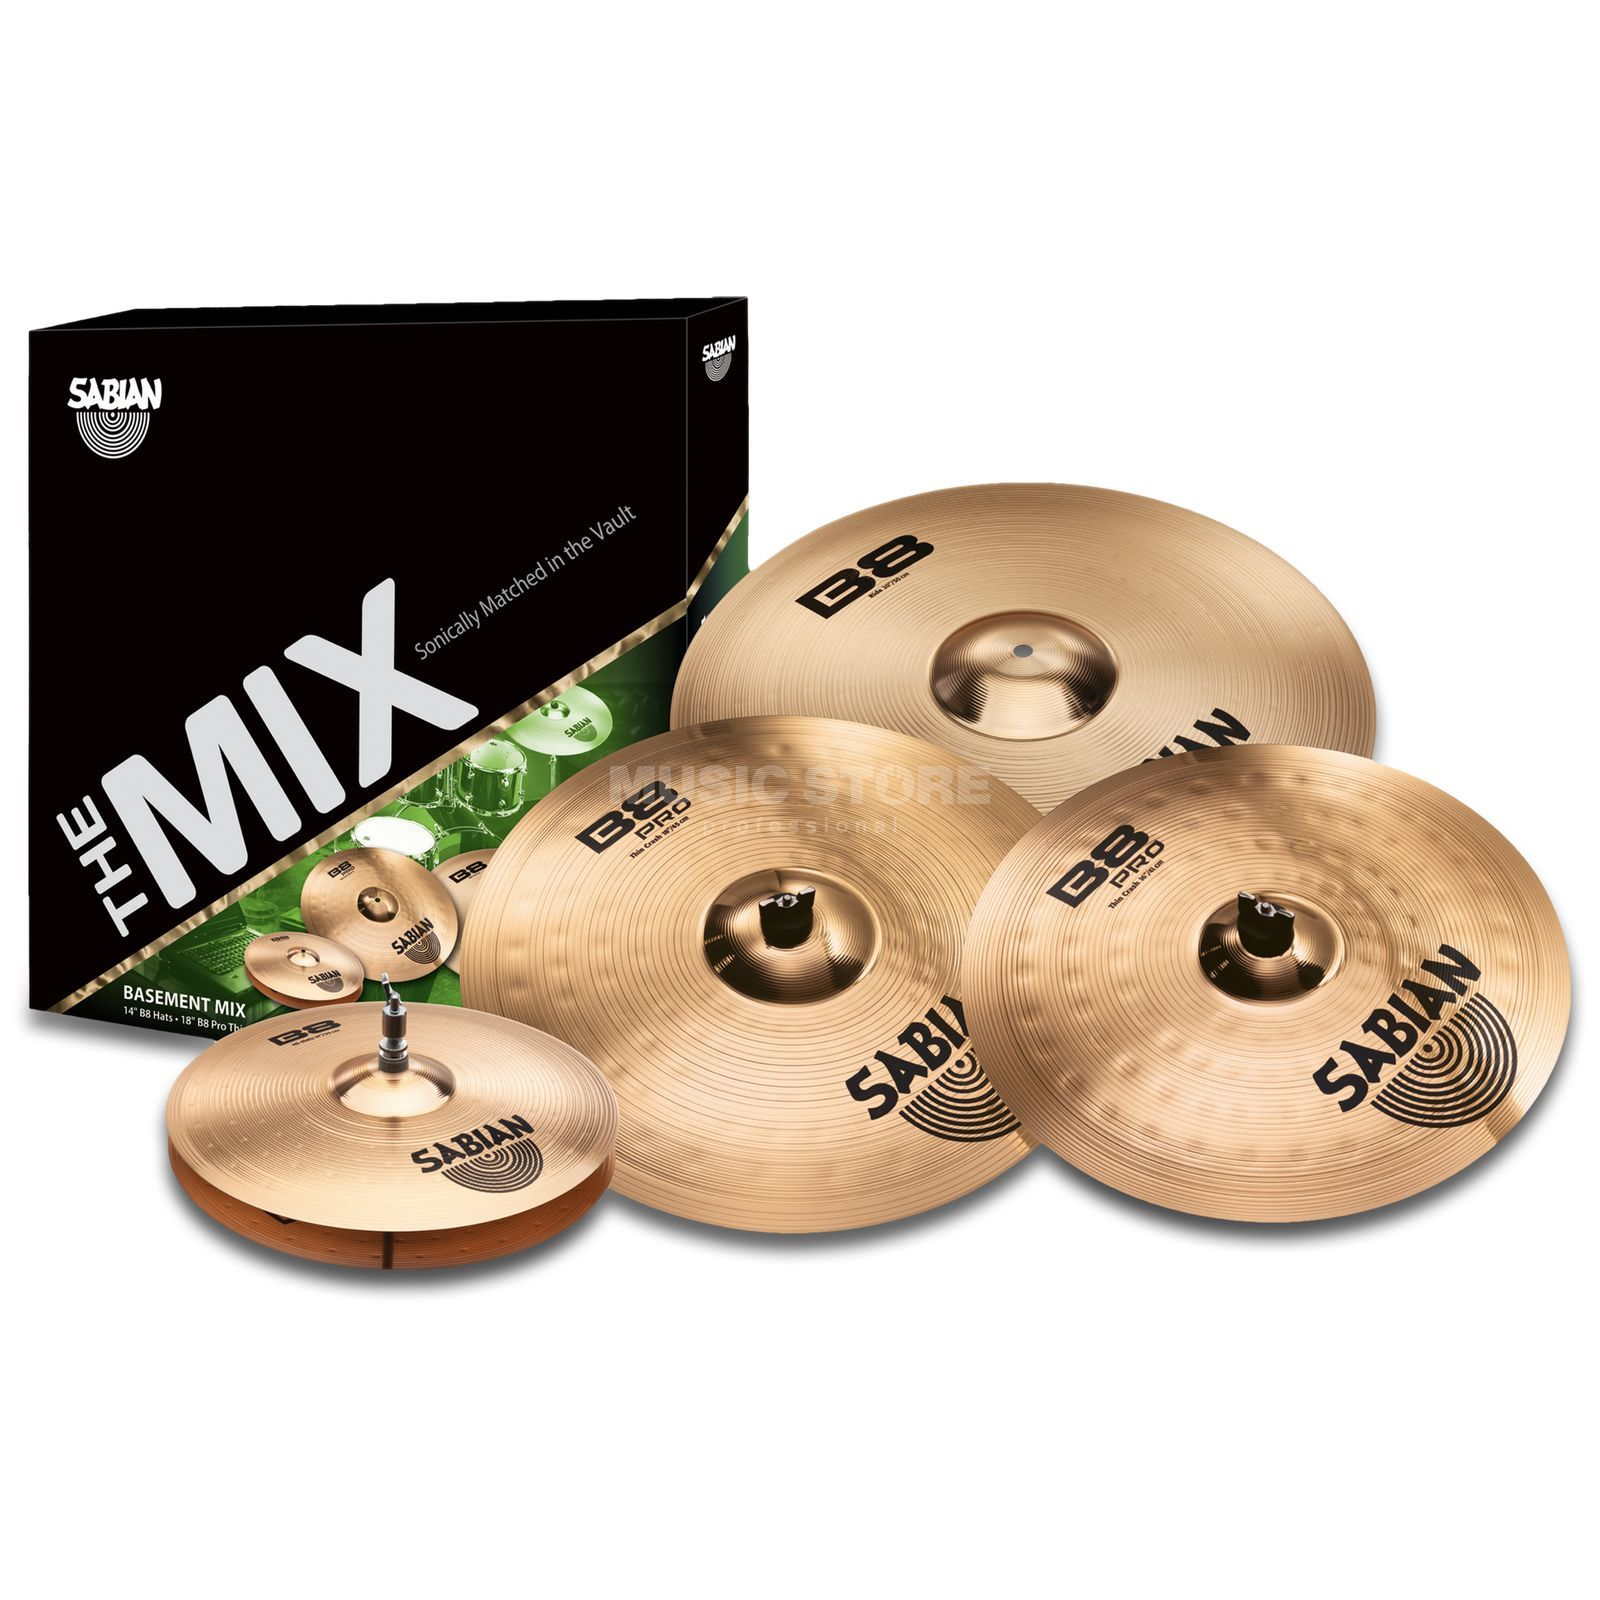 "Sabian B8/B8PRO Cymbal Set ""Basement"" Brilliant Finish Produktbild"